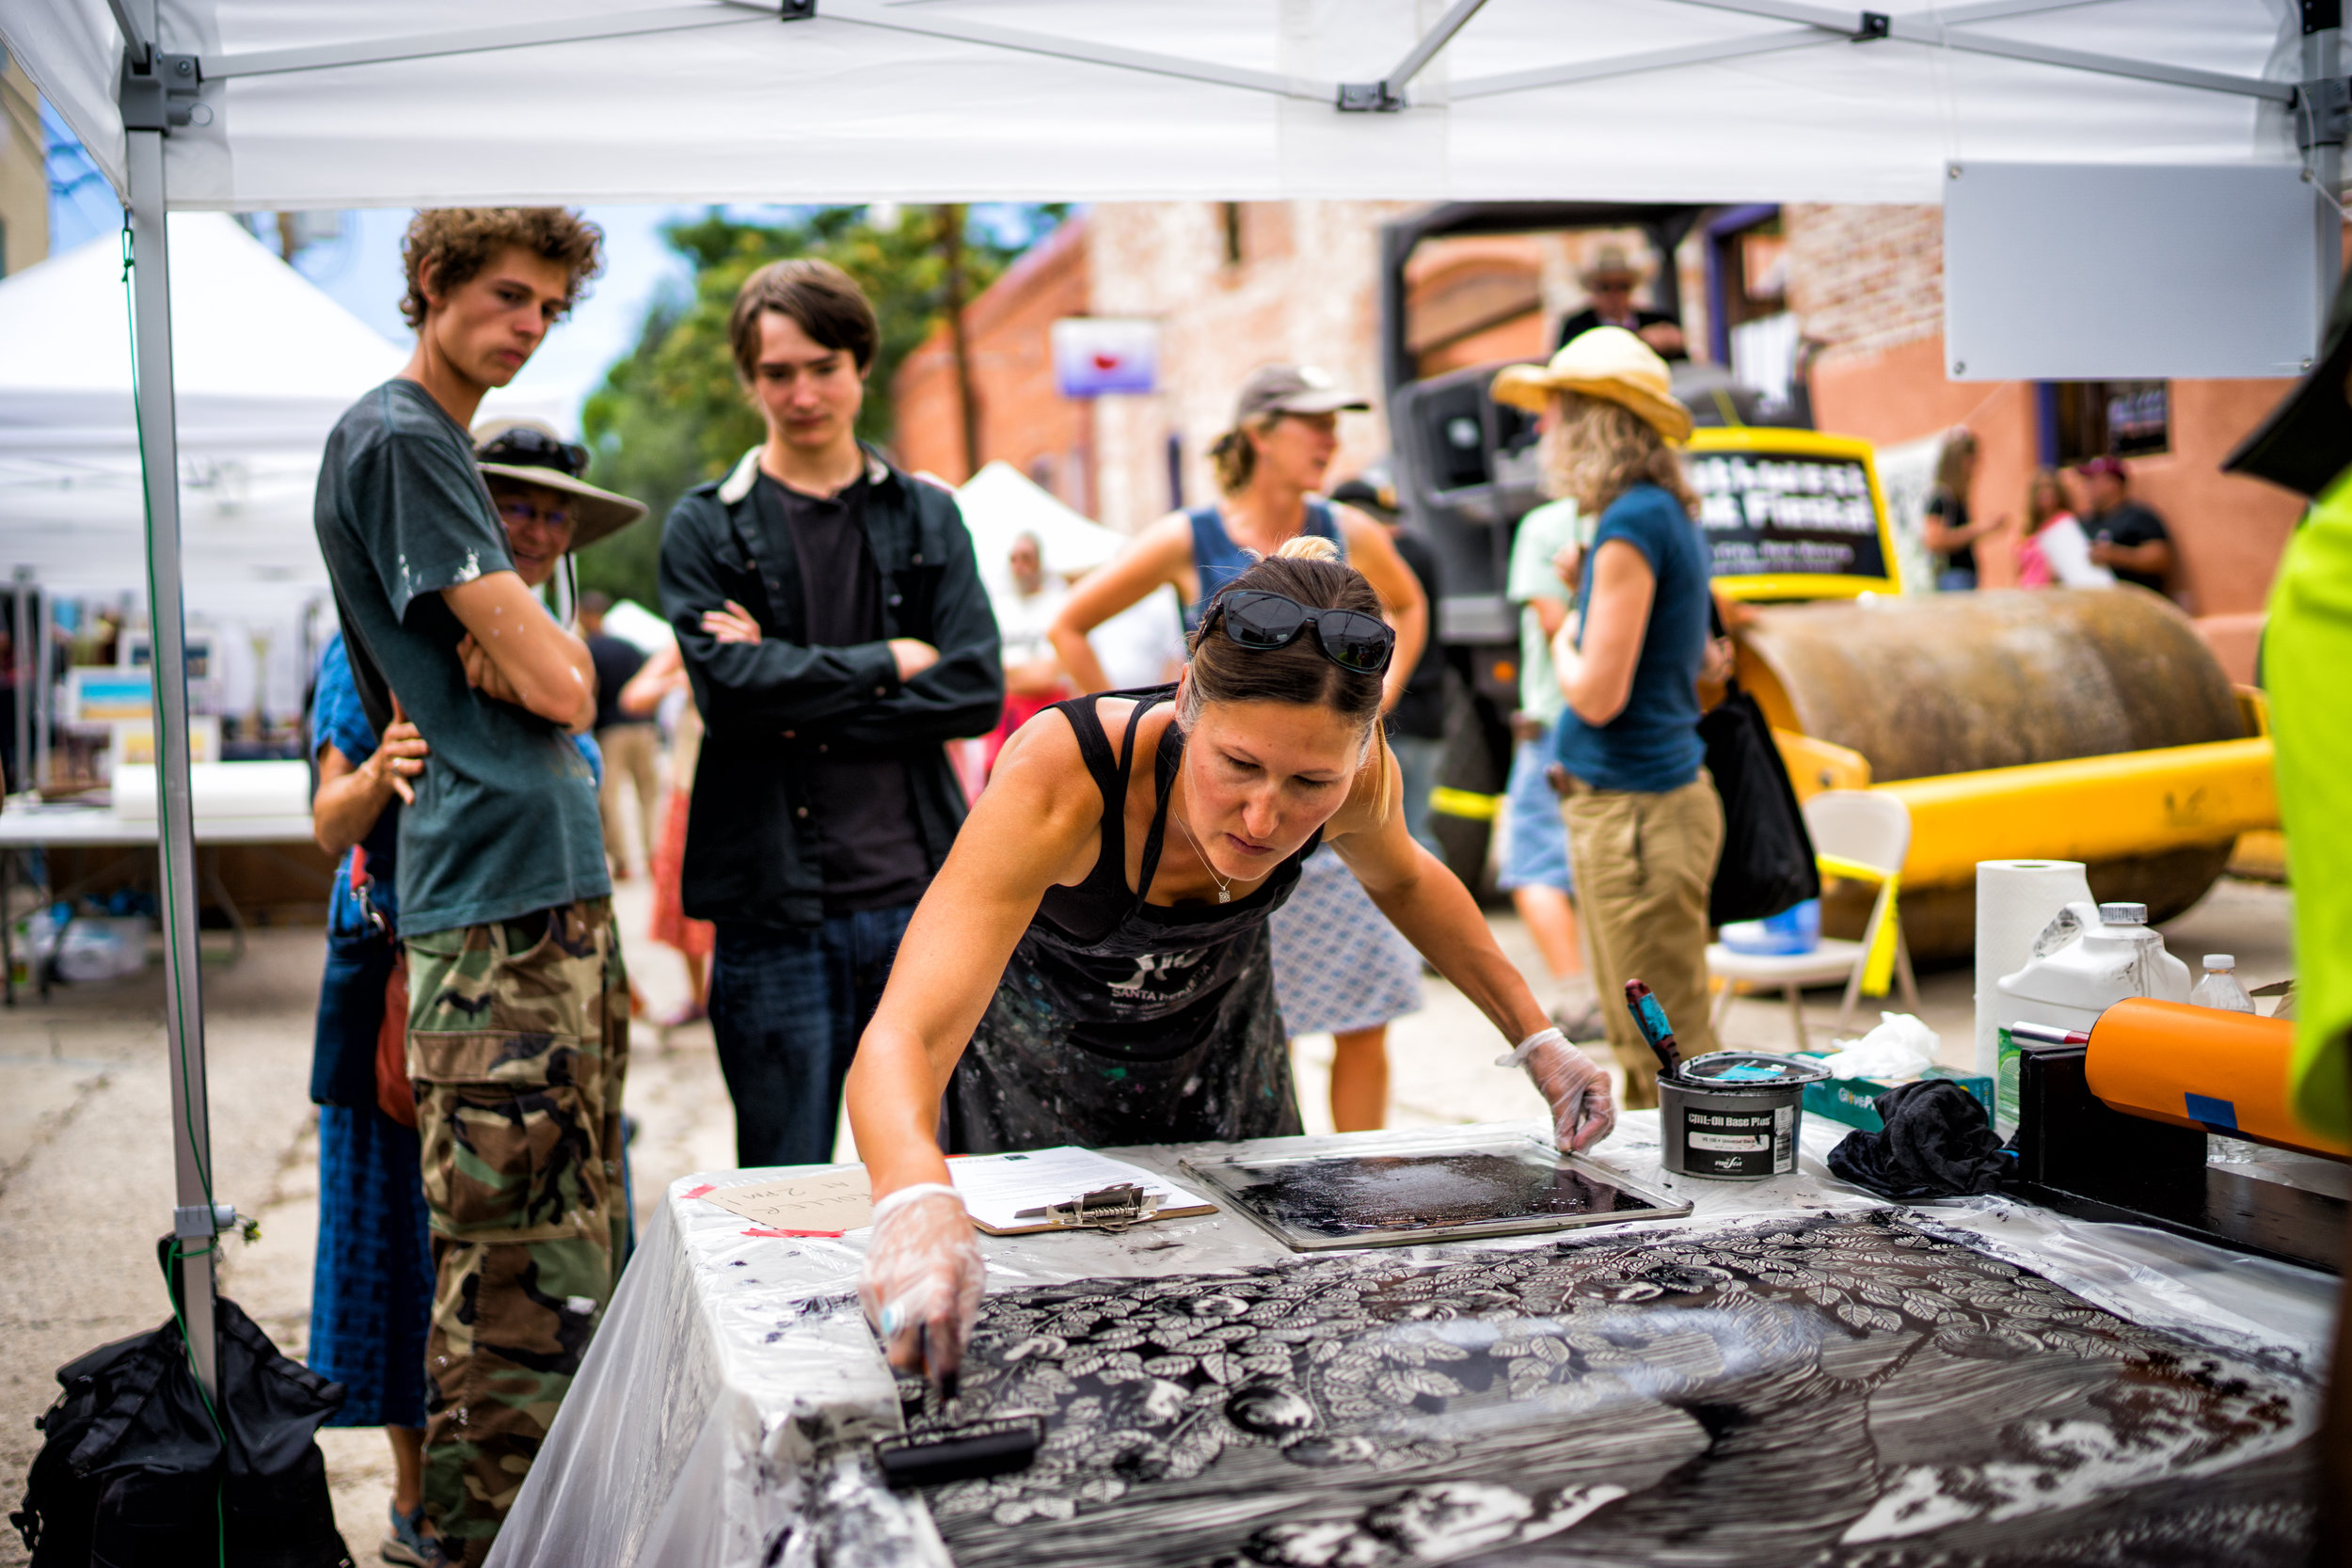 Inked by hand - Silver City local artist and educator, Stacey Heim, inks a large lineoleum block as visitors watch!